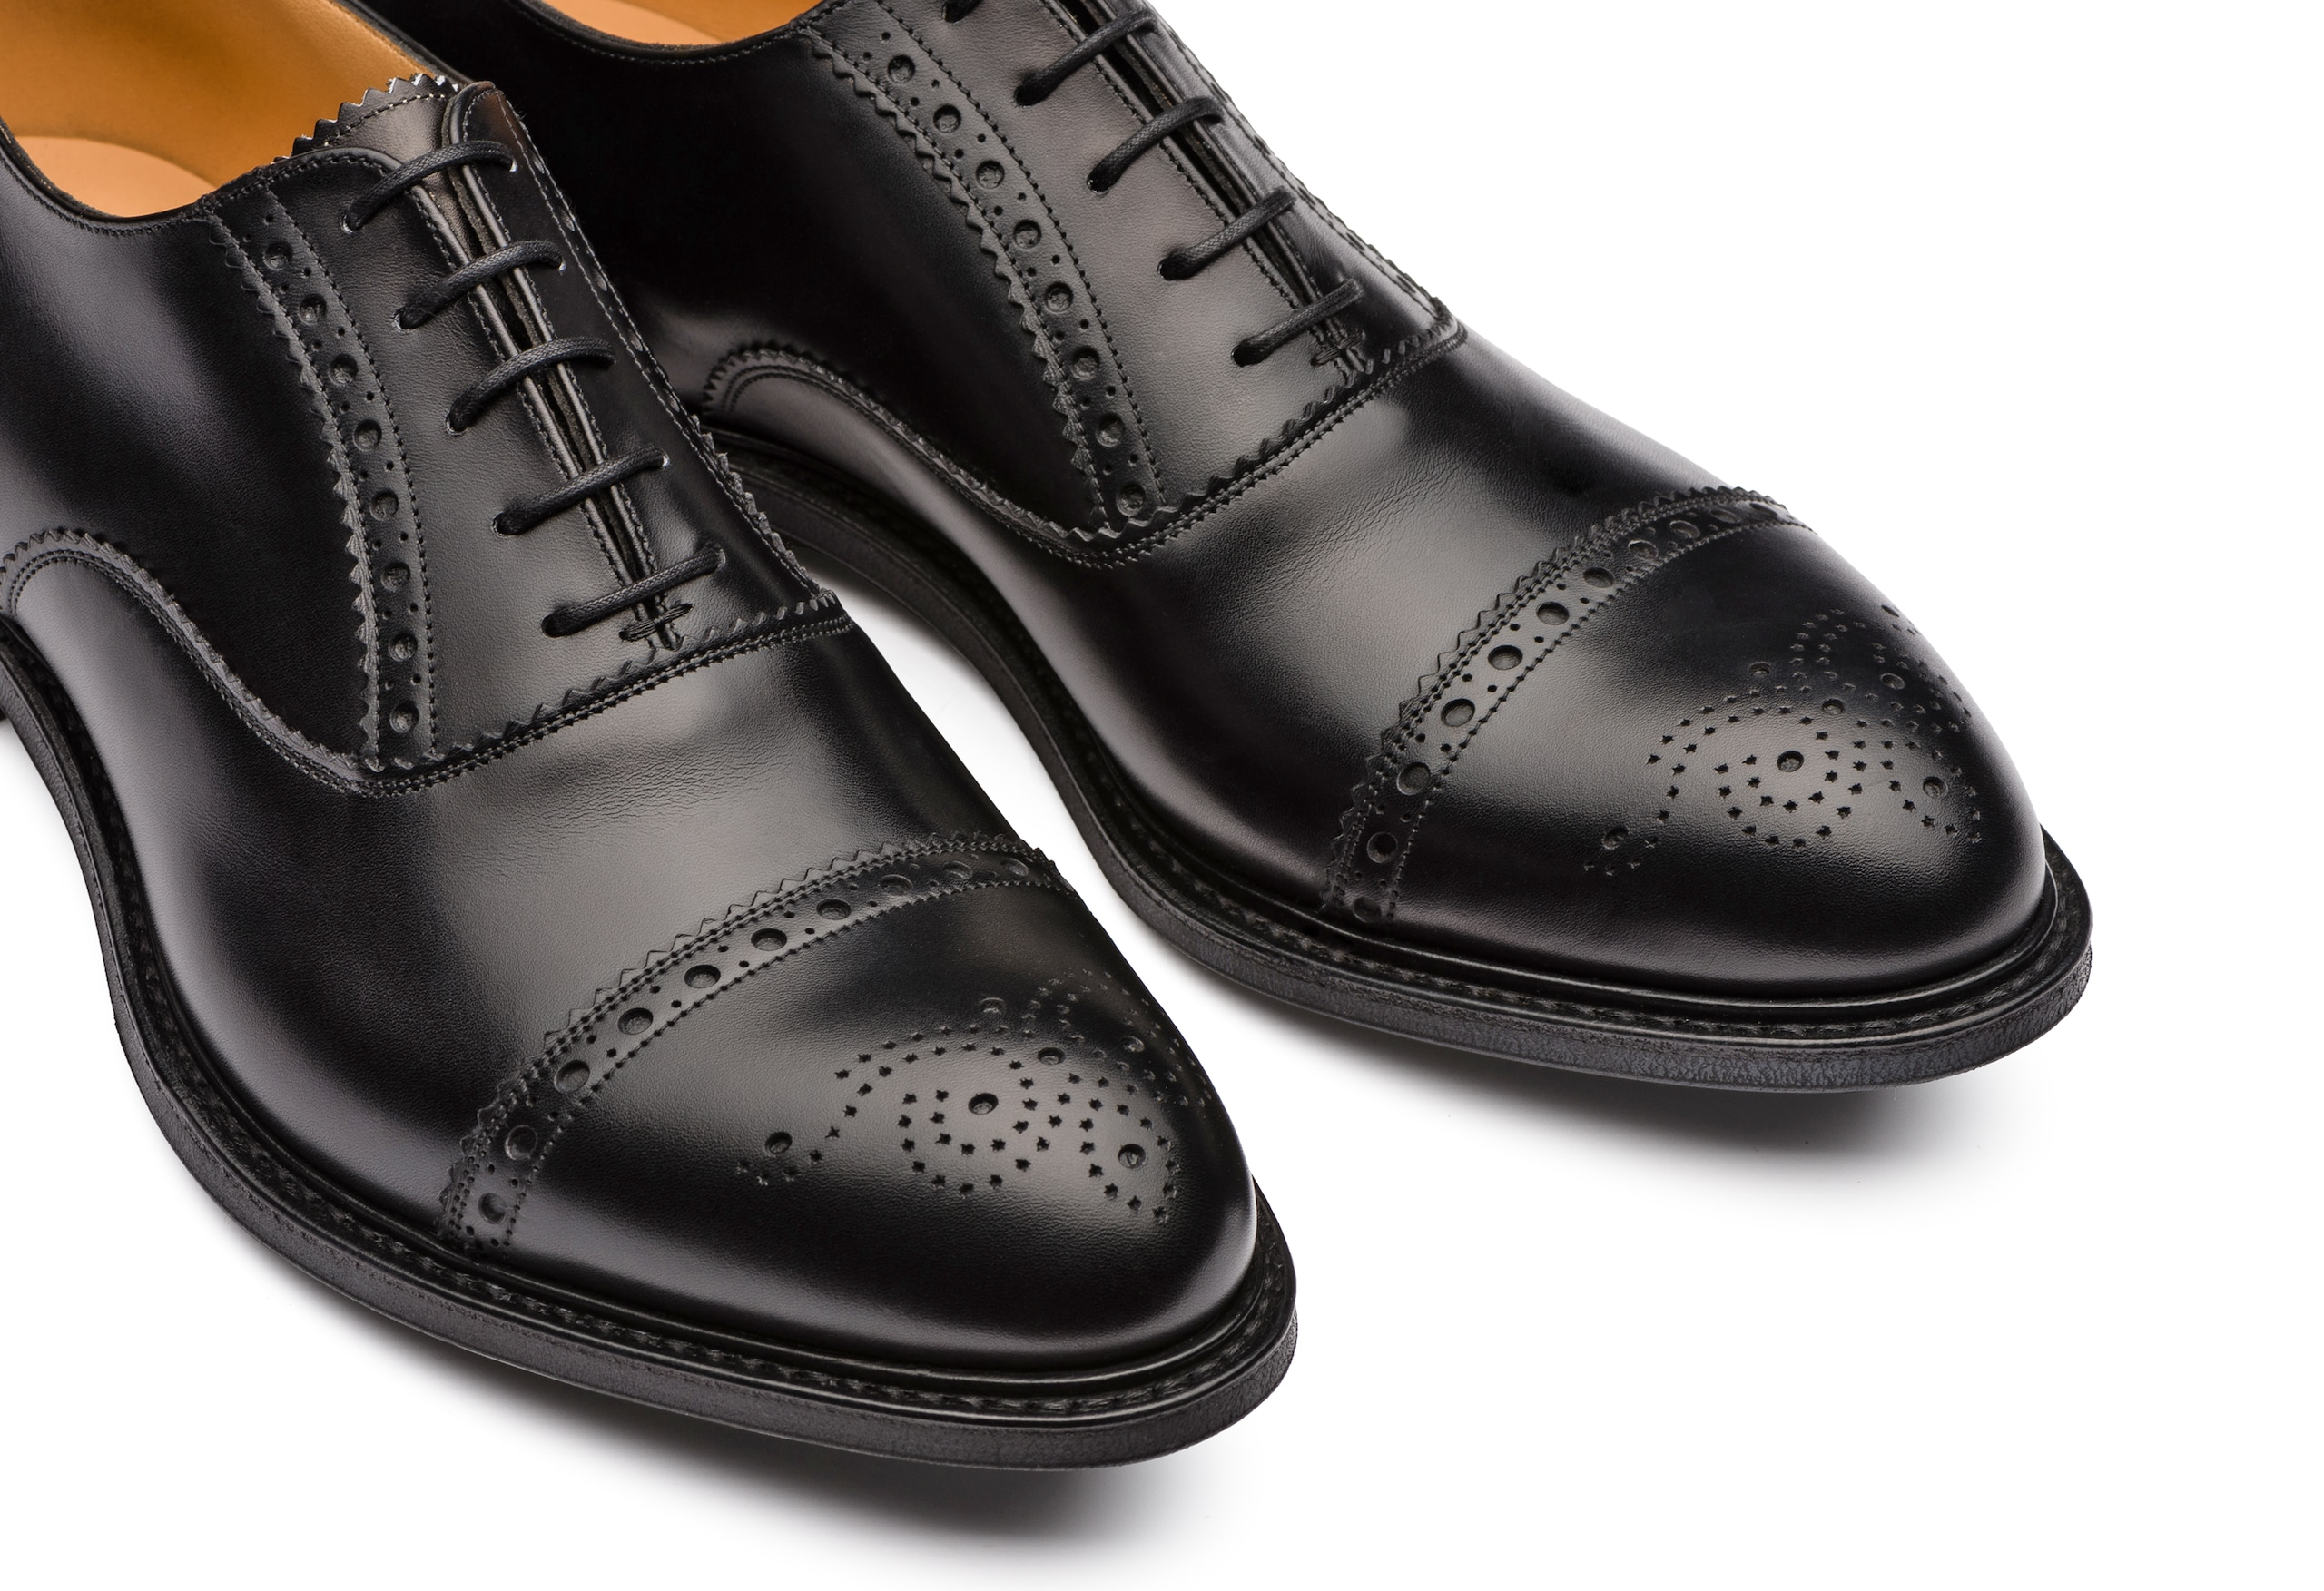 Waltham Church's Oxford Brogue in Pelle di Vitello Nero